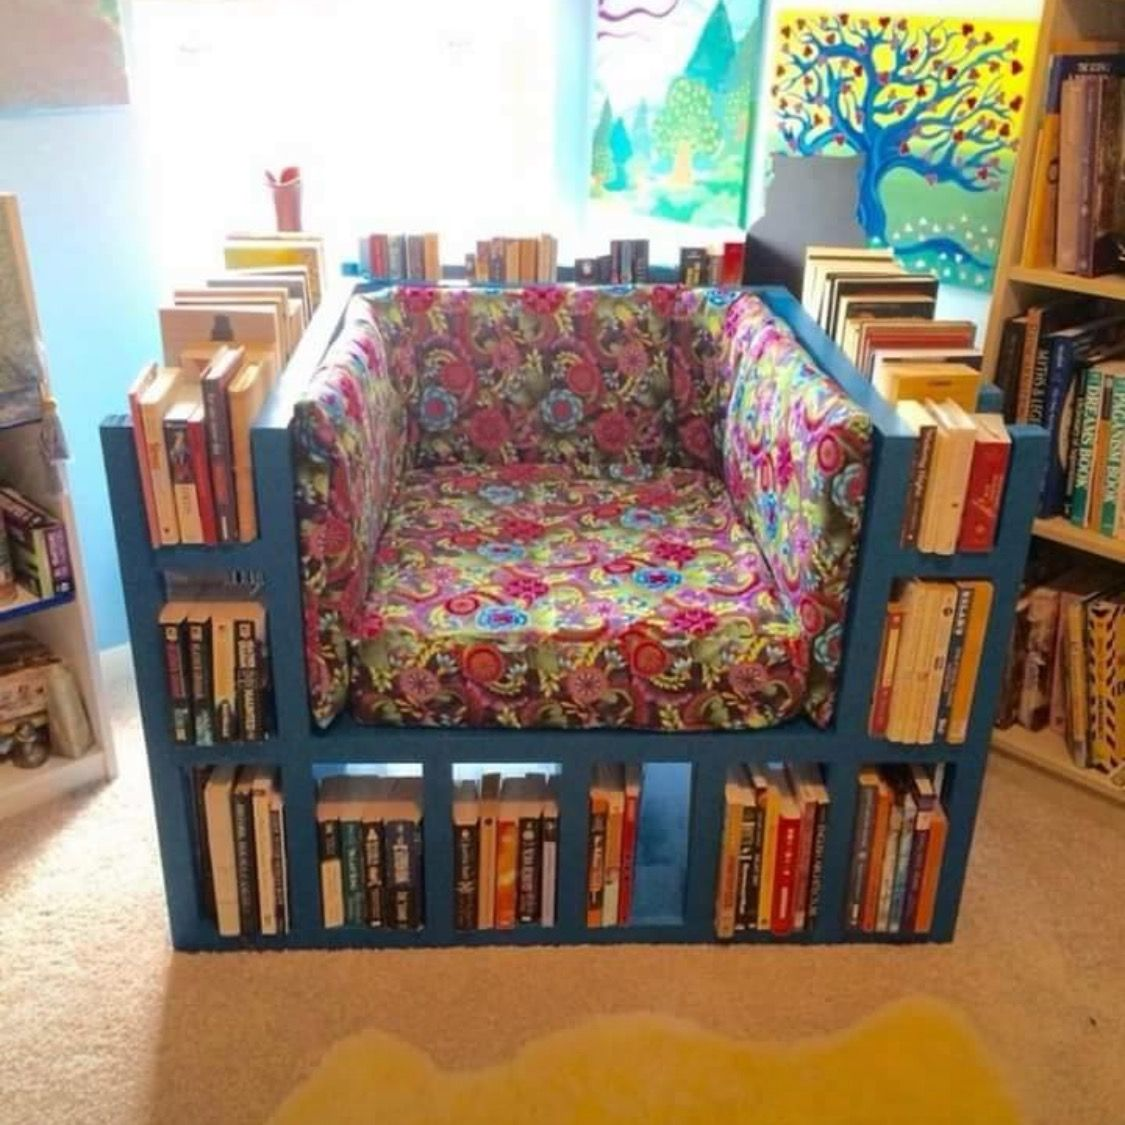 Awesome reading chair!